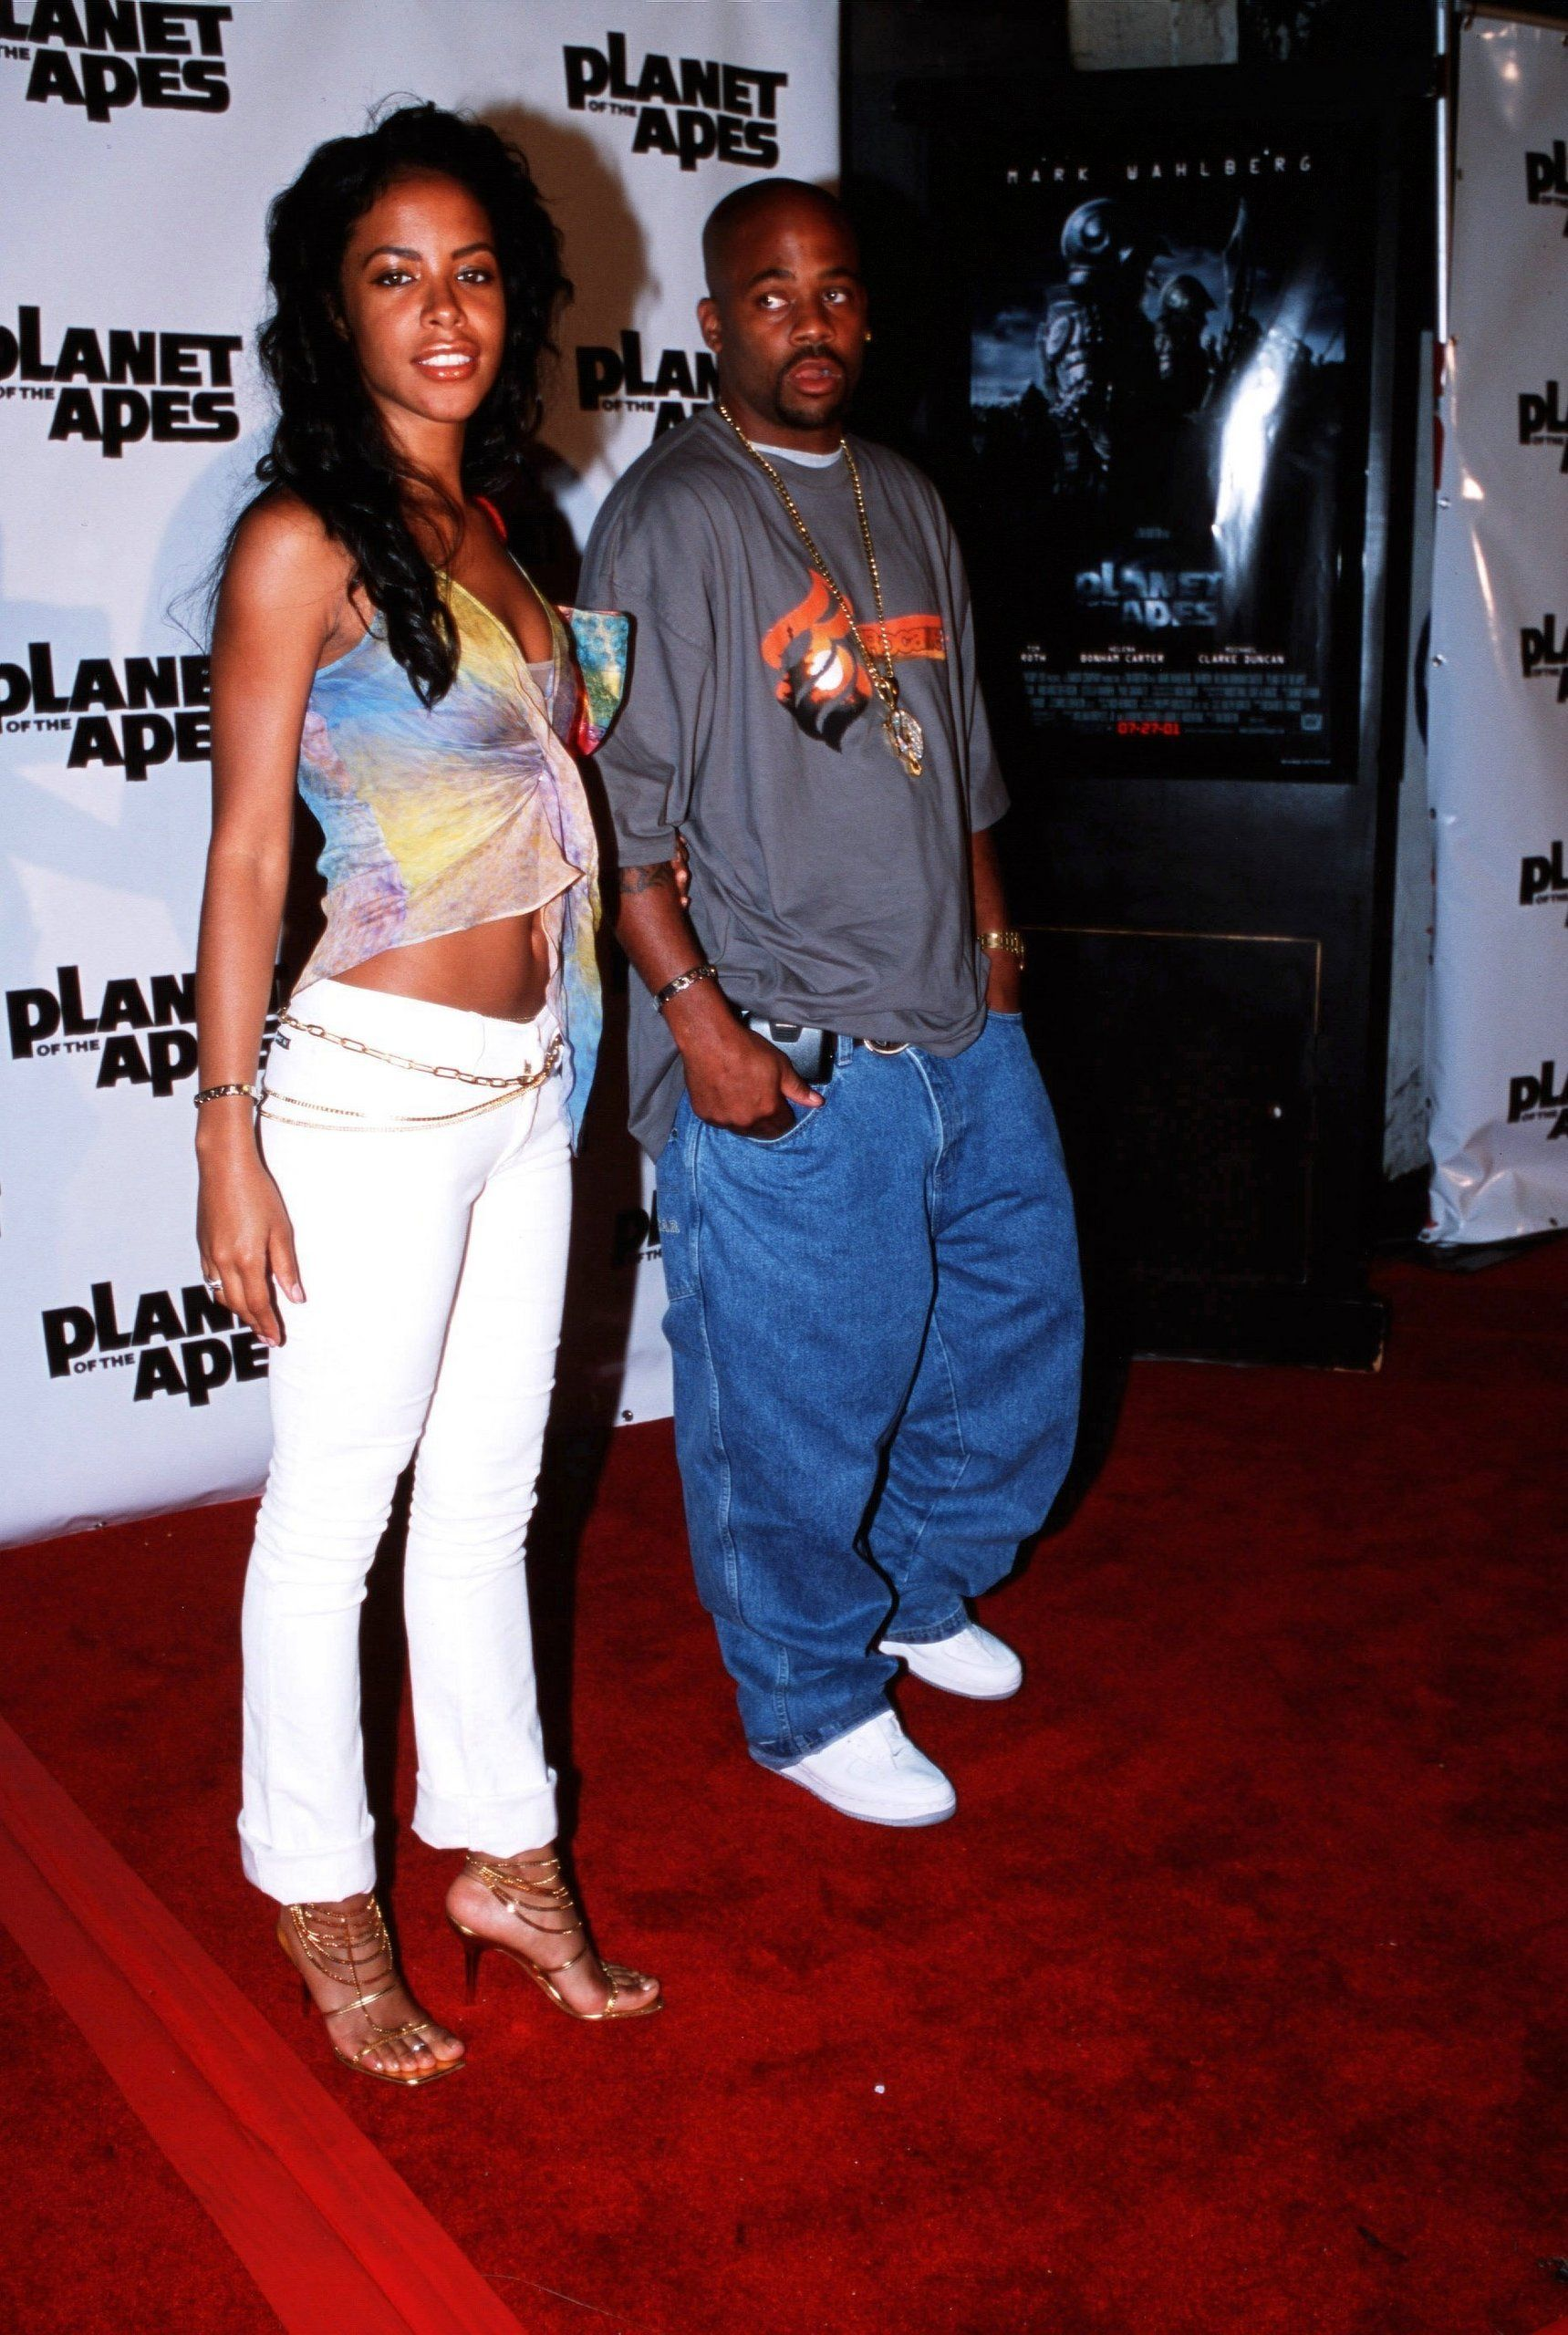 Facts About Aaliyah - Aaliyah's Secret Moments